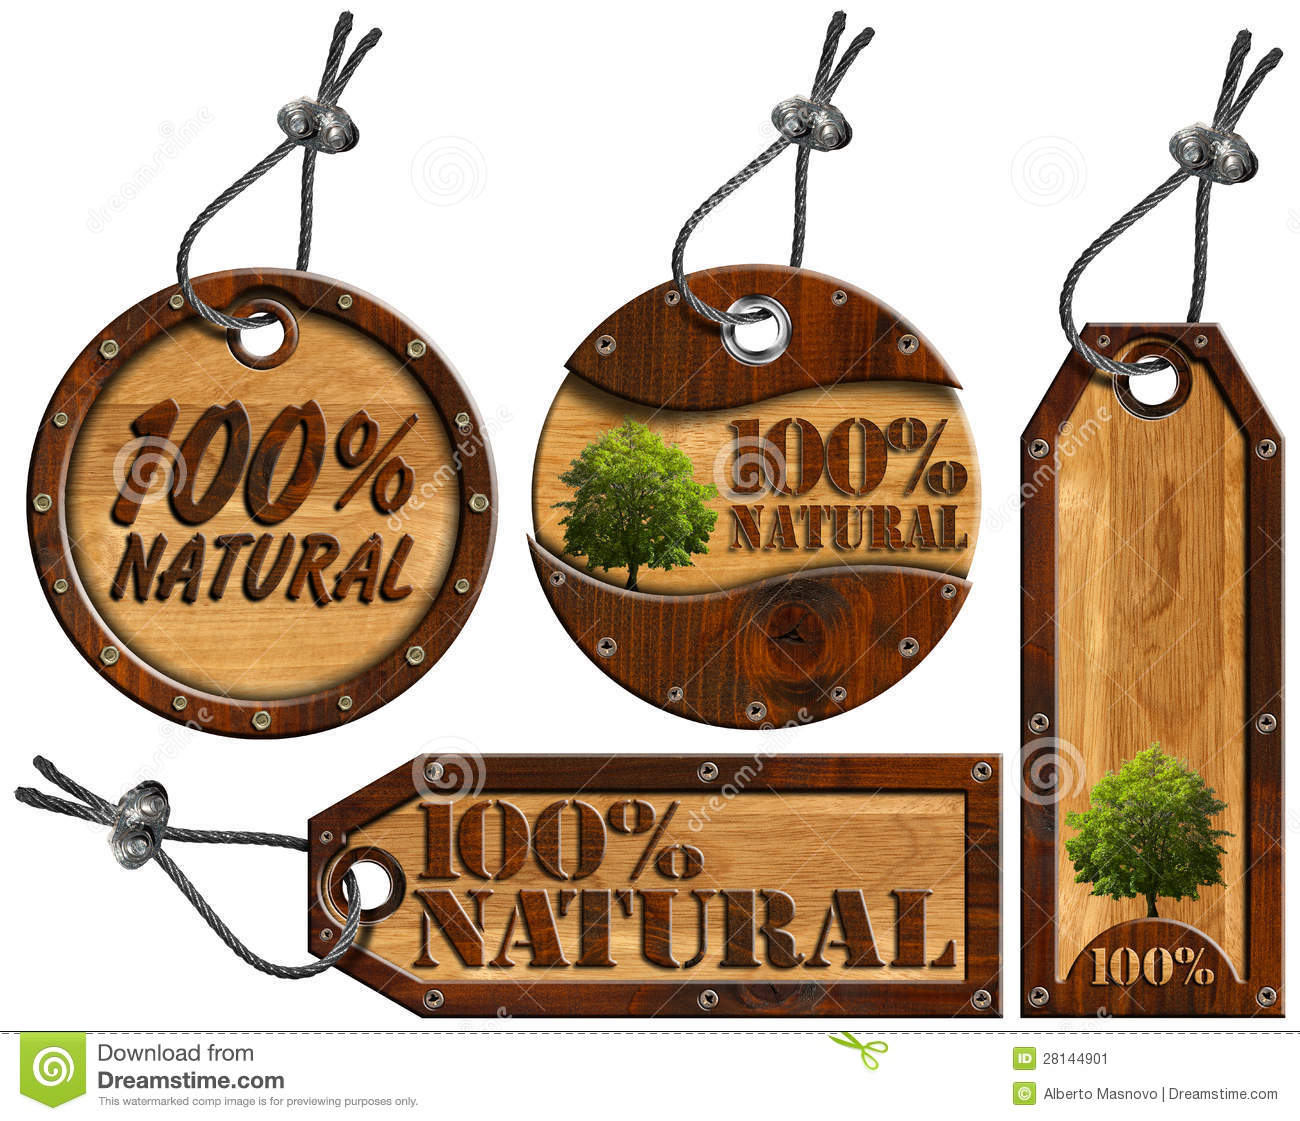 100% Natural - Wooden Tags - 4 Items Stock Illustration